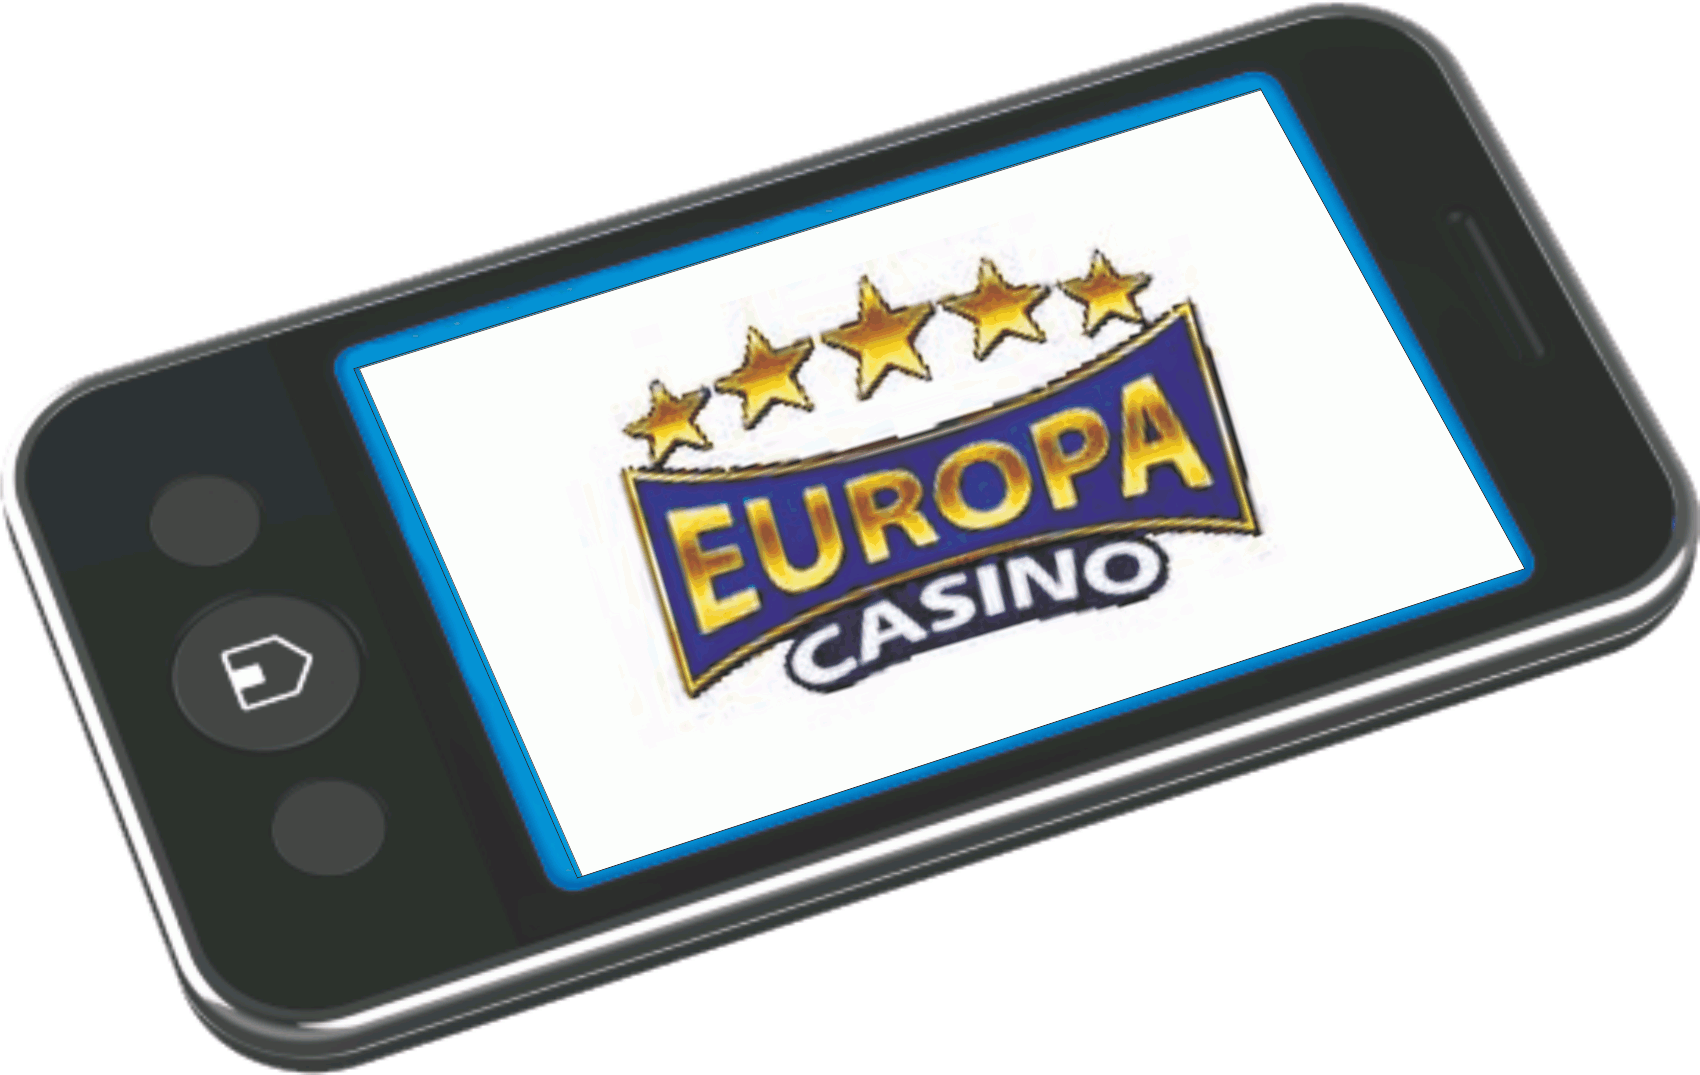 Europa-Casino-Mobile_logo